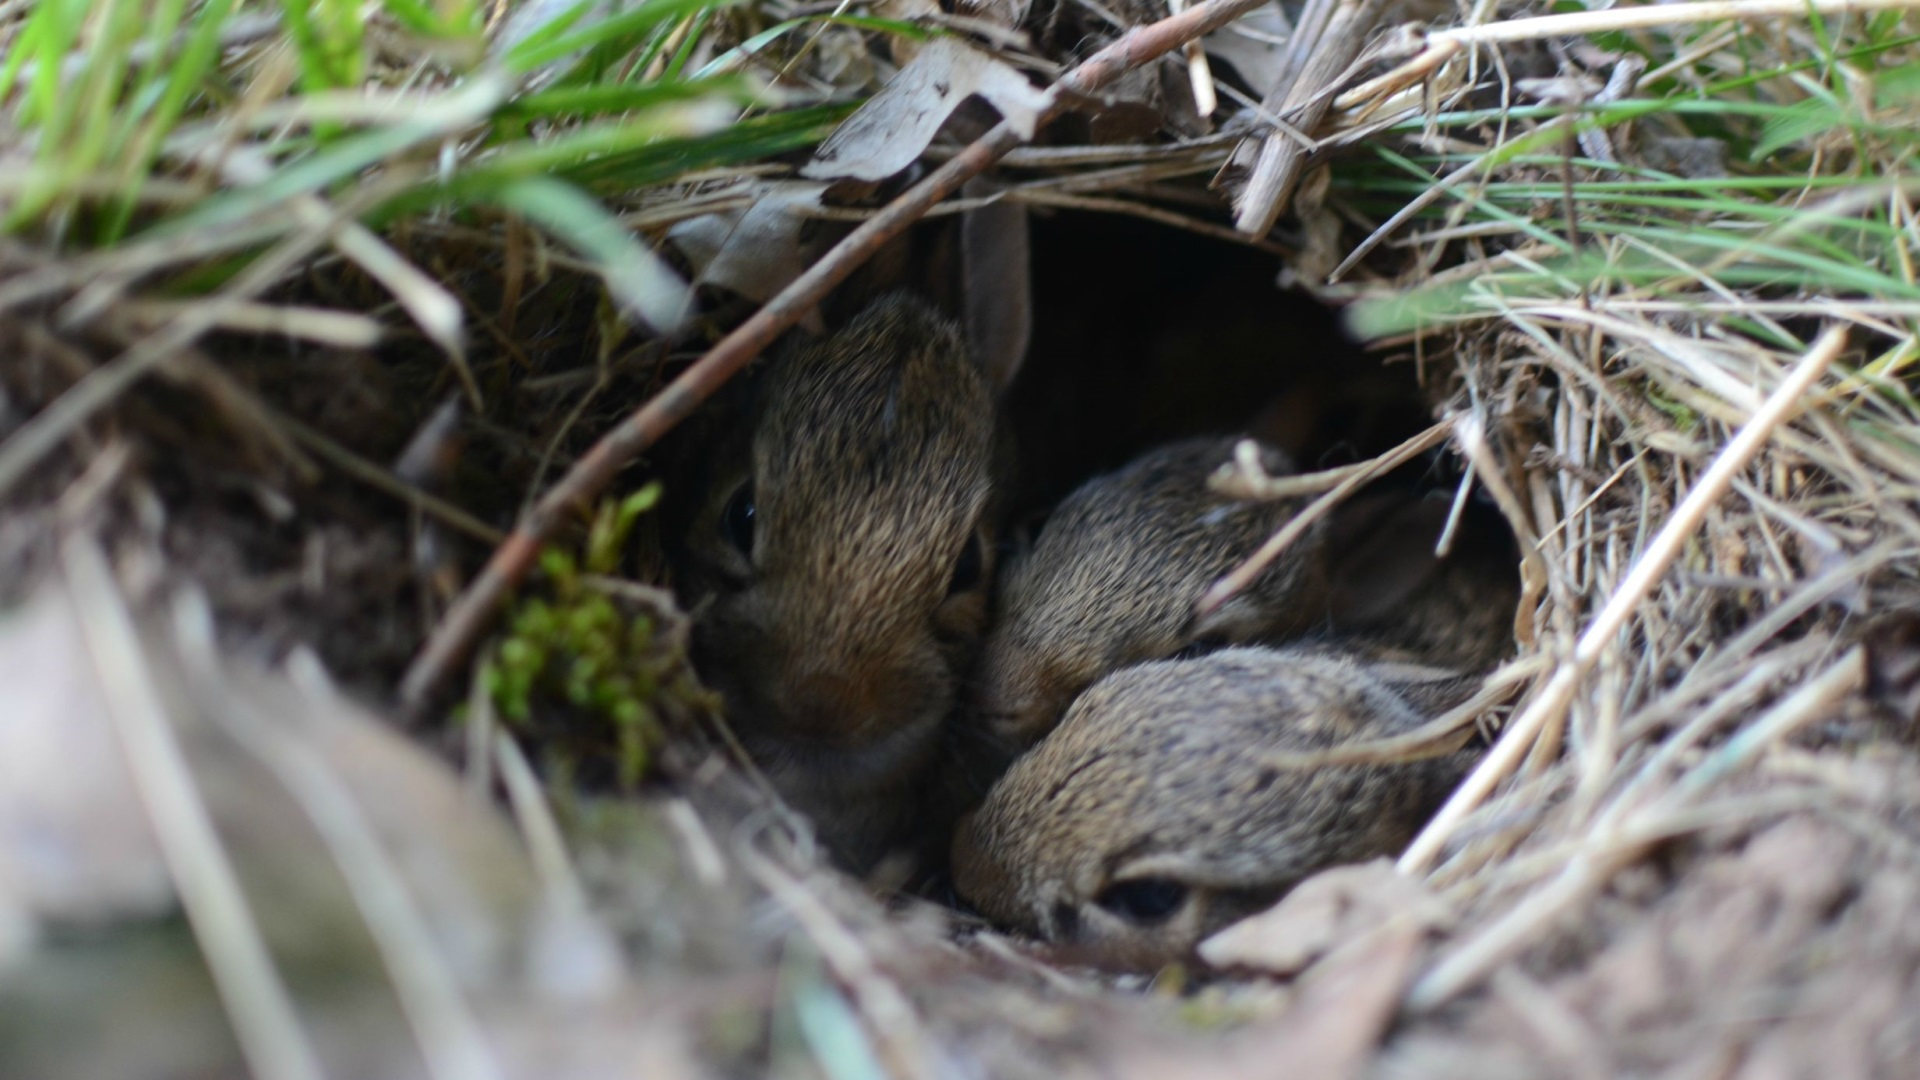 A-clutch-of-baby-rabbits-wallpaper-wp3402060